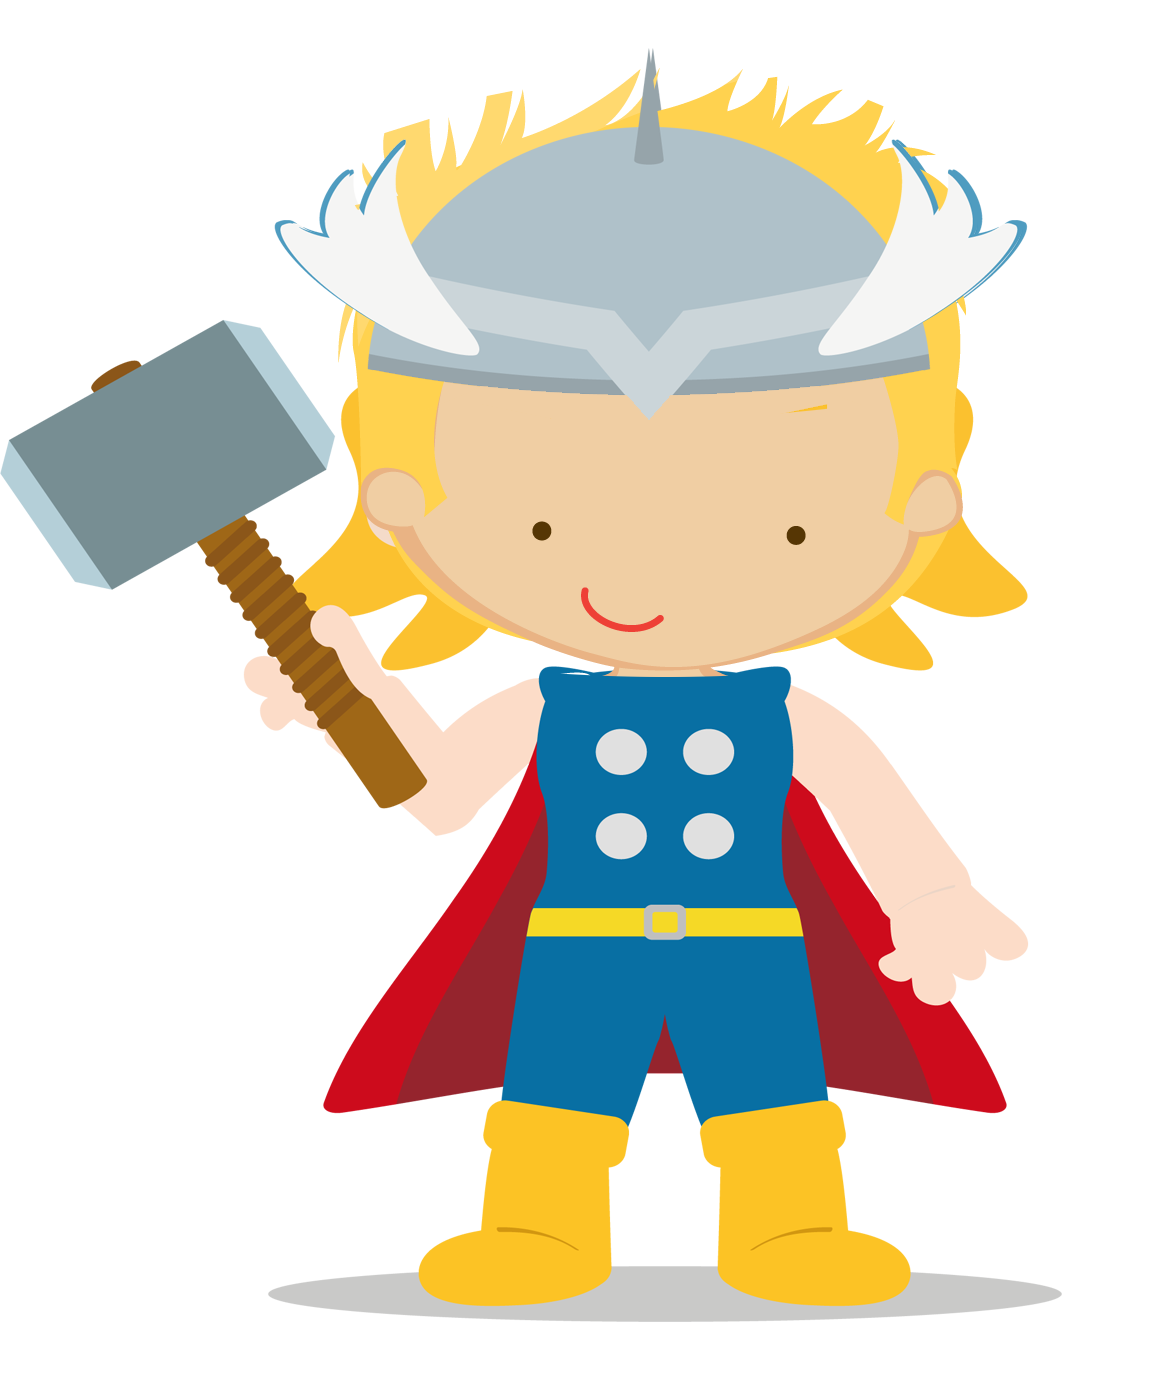 png royalty free download Ibny tiidzpuua png visit. Thor clipart classic